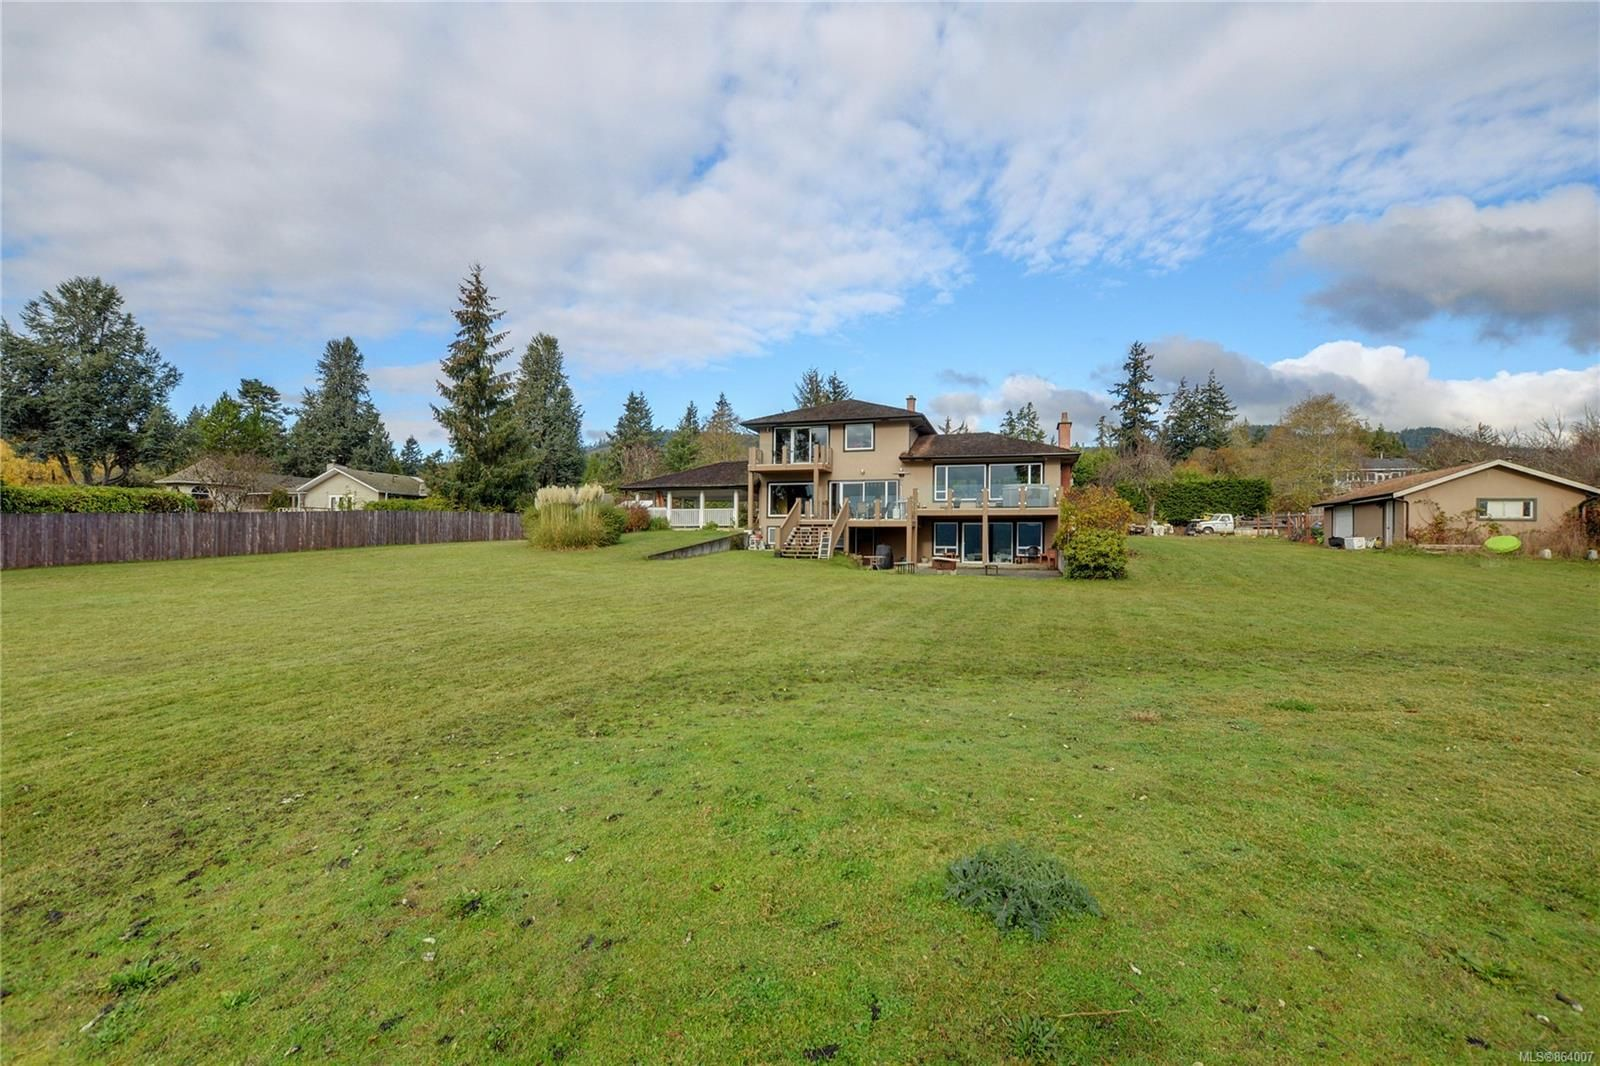 Photo 26: Photos: 5697 Sooke Rd in : Sk Saseenos House for sale (Sooke)  : MLS®# 864007